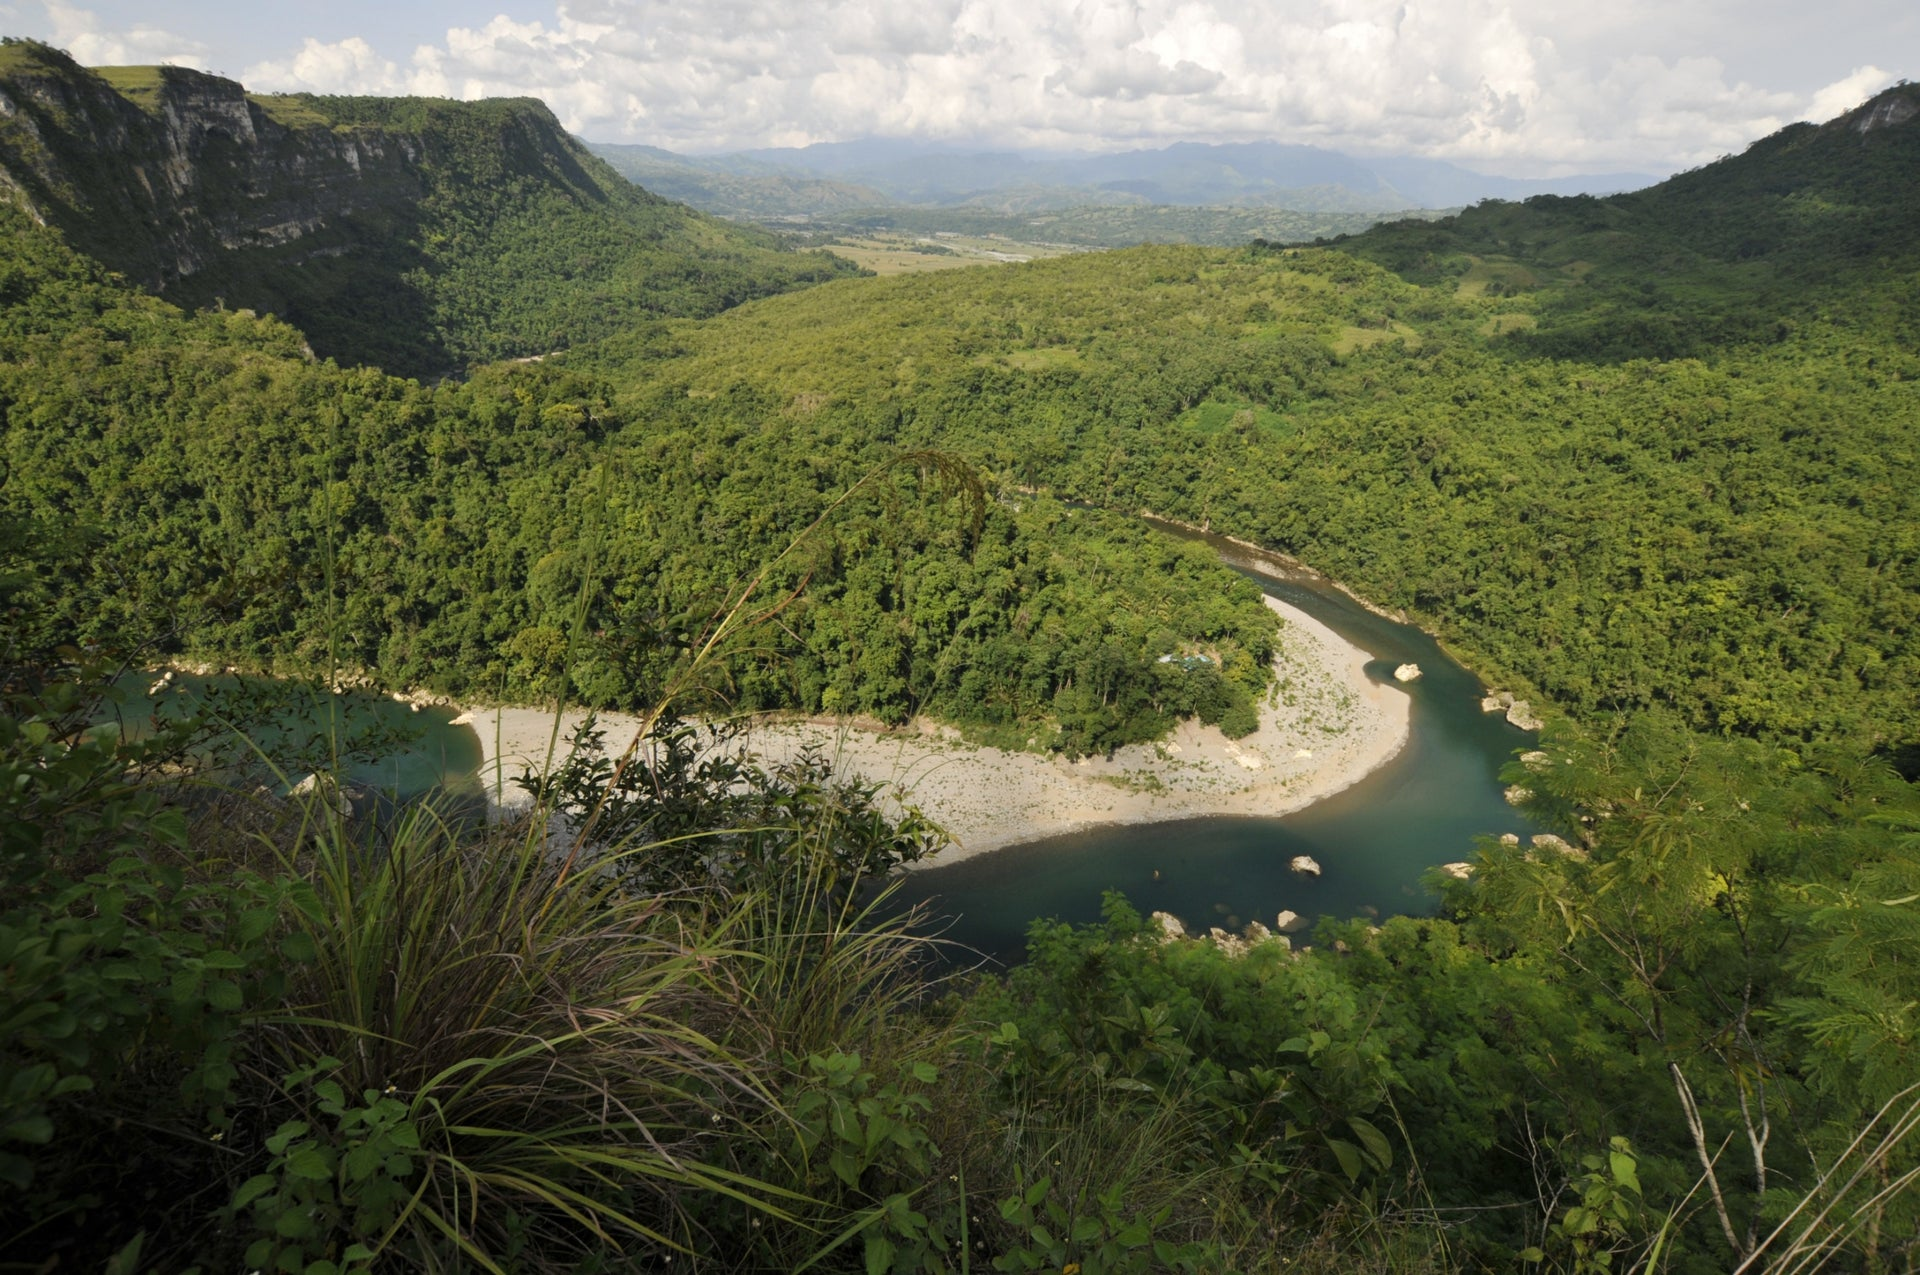 The location of Callao Cave in Luzon, the Philippines